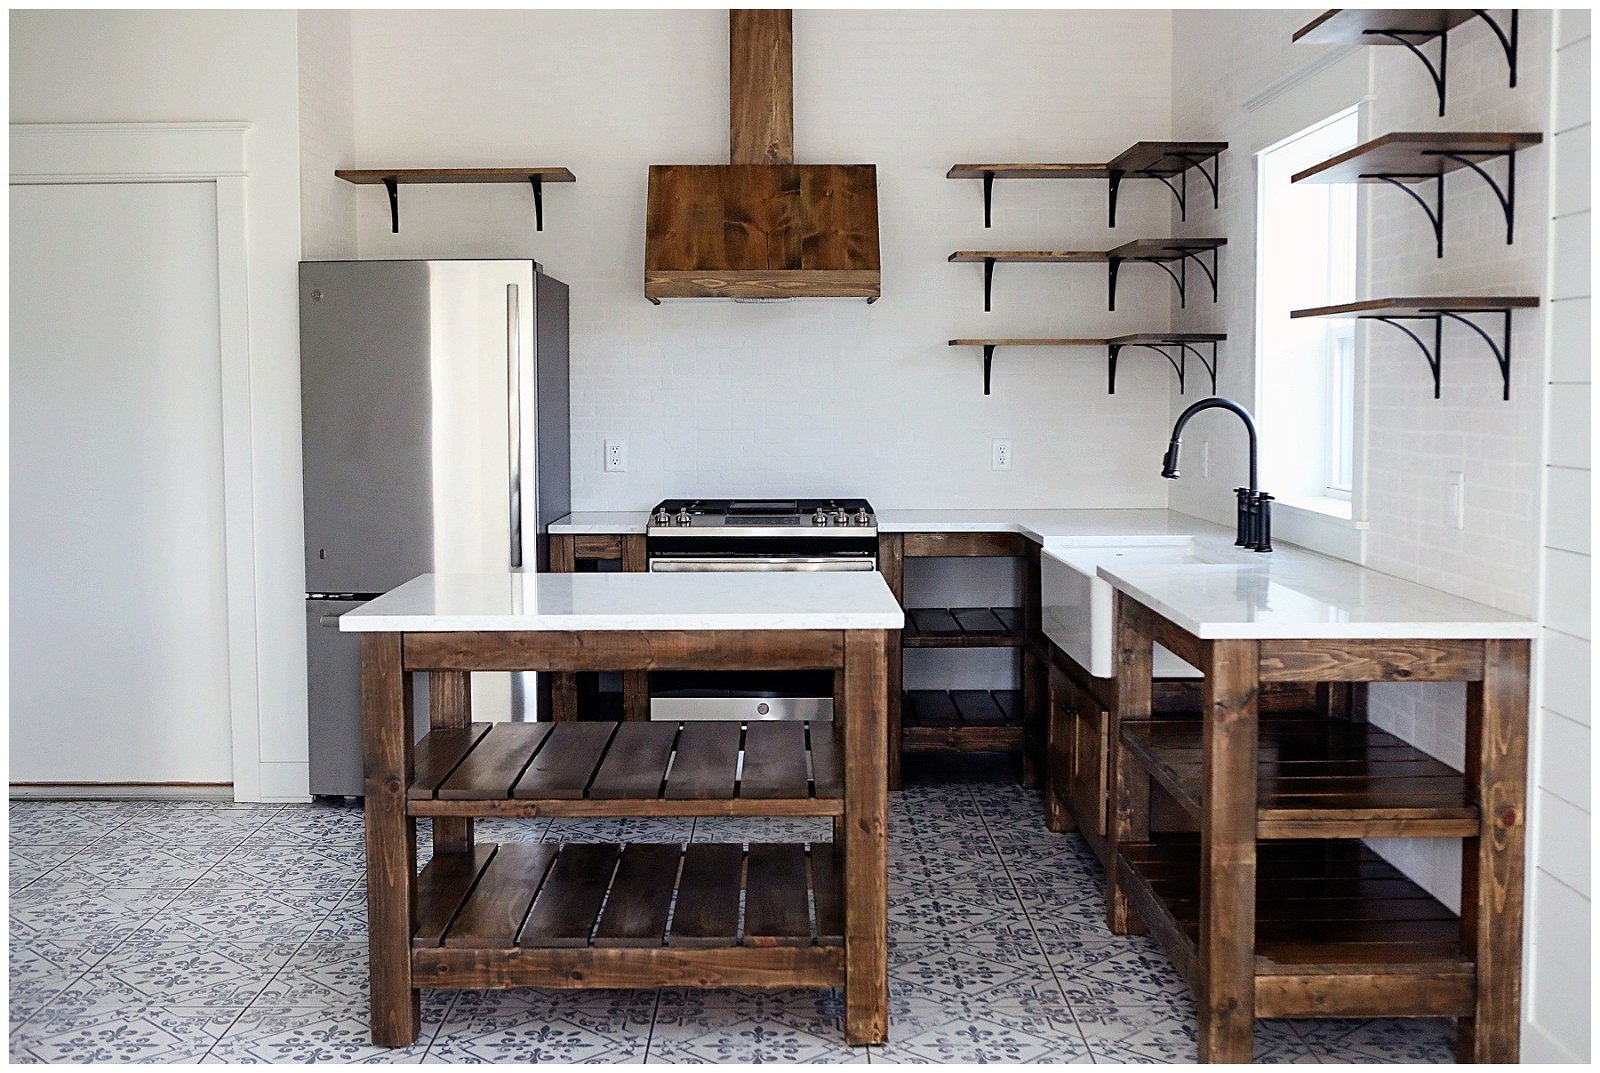 Farmhouse Kitchen Design in the Barn